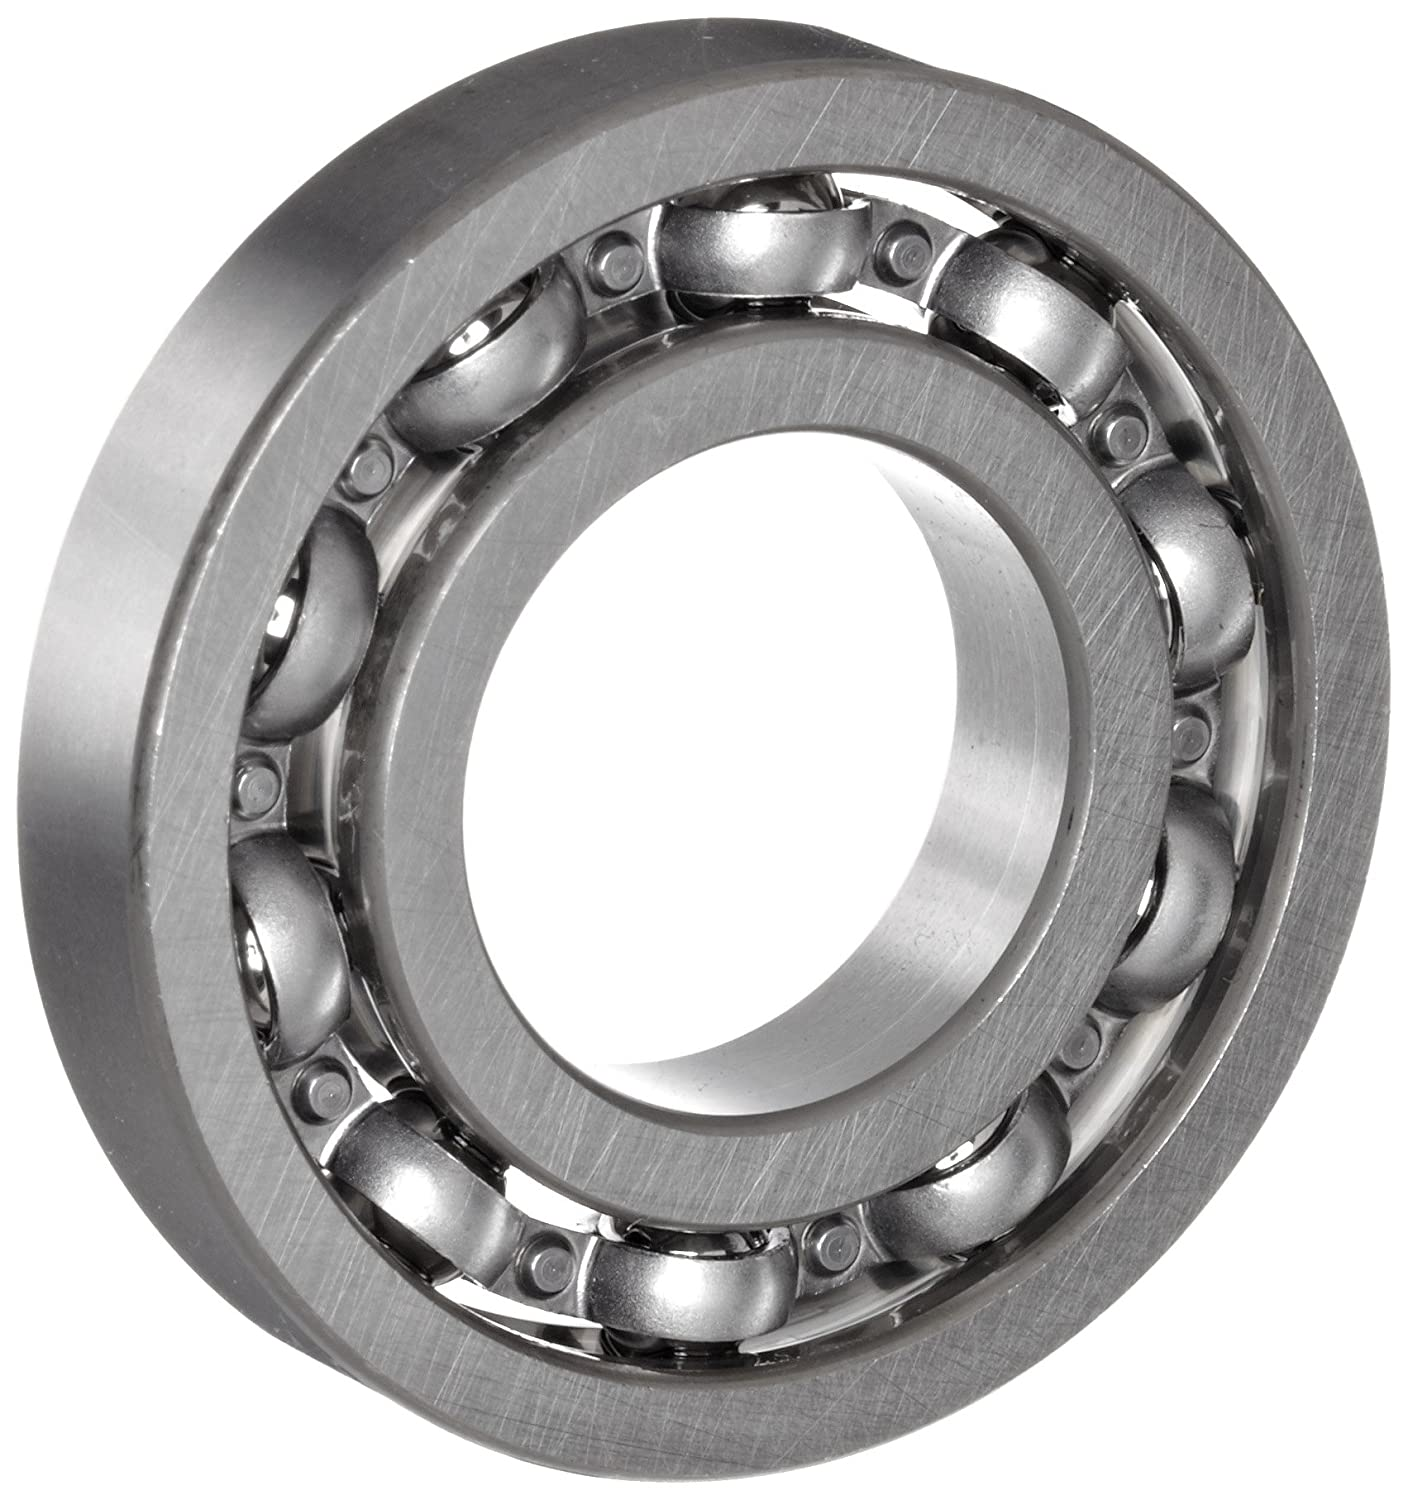 NSK 16018 Deep Groove Ball Bearing, Single Row, Open, Pressed Steel Cage, Normal Clearance, Metric, 90mm Bore, 140mm OD, 16mm Width, 4800rpm Maximum Rotational Speed, 39500N Static Load Capacity, 415000N Dynamic Load Capacity 694 full si3n4 ceramic deep groove ball bearing 4x11x4mm